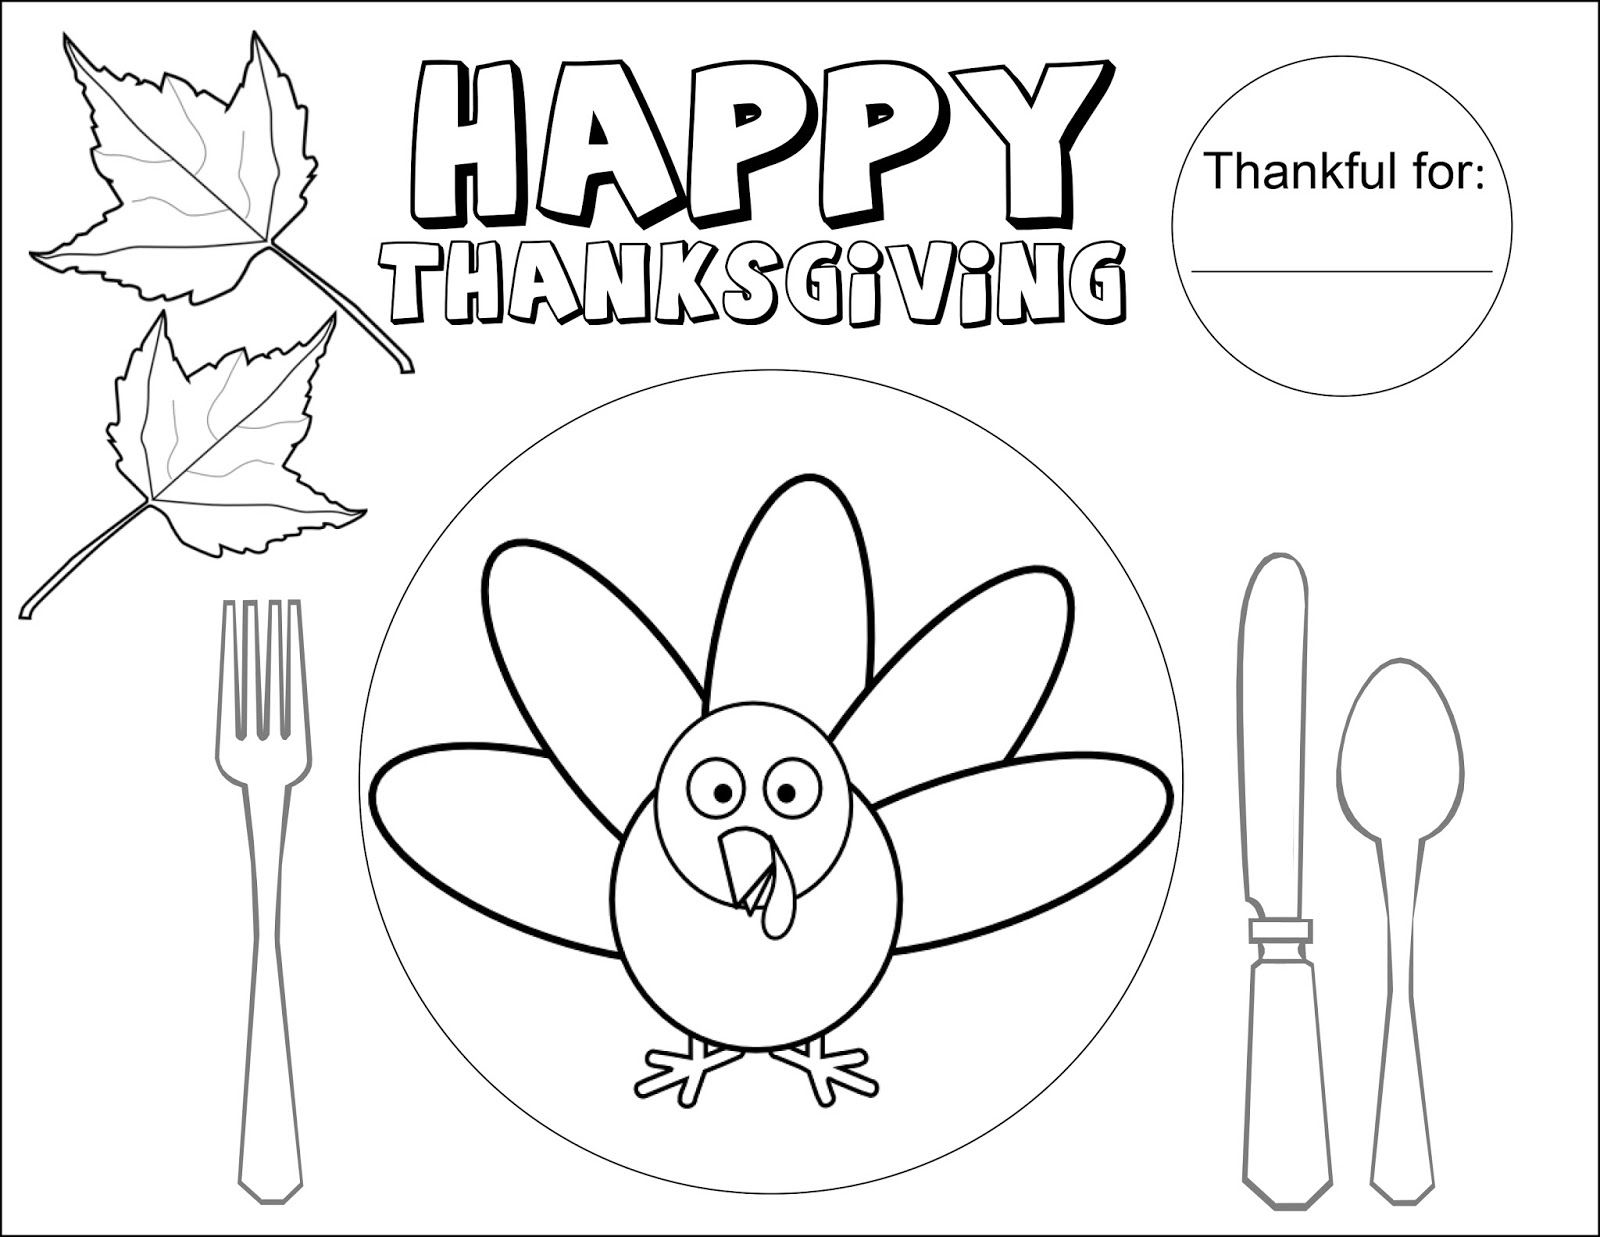 Free Printable Thanksgiving Coloring Placemats | Coloring Page